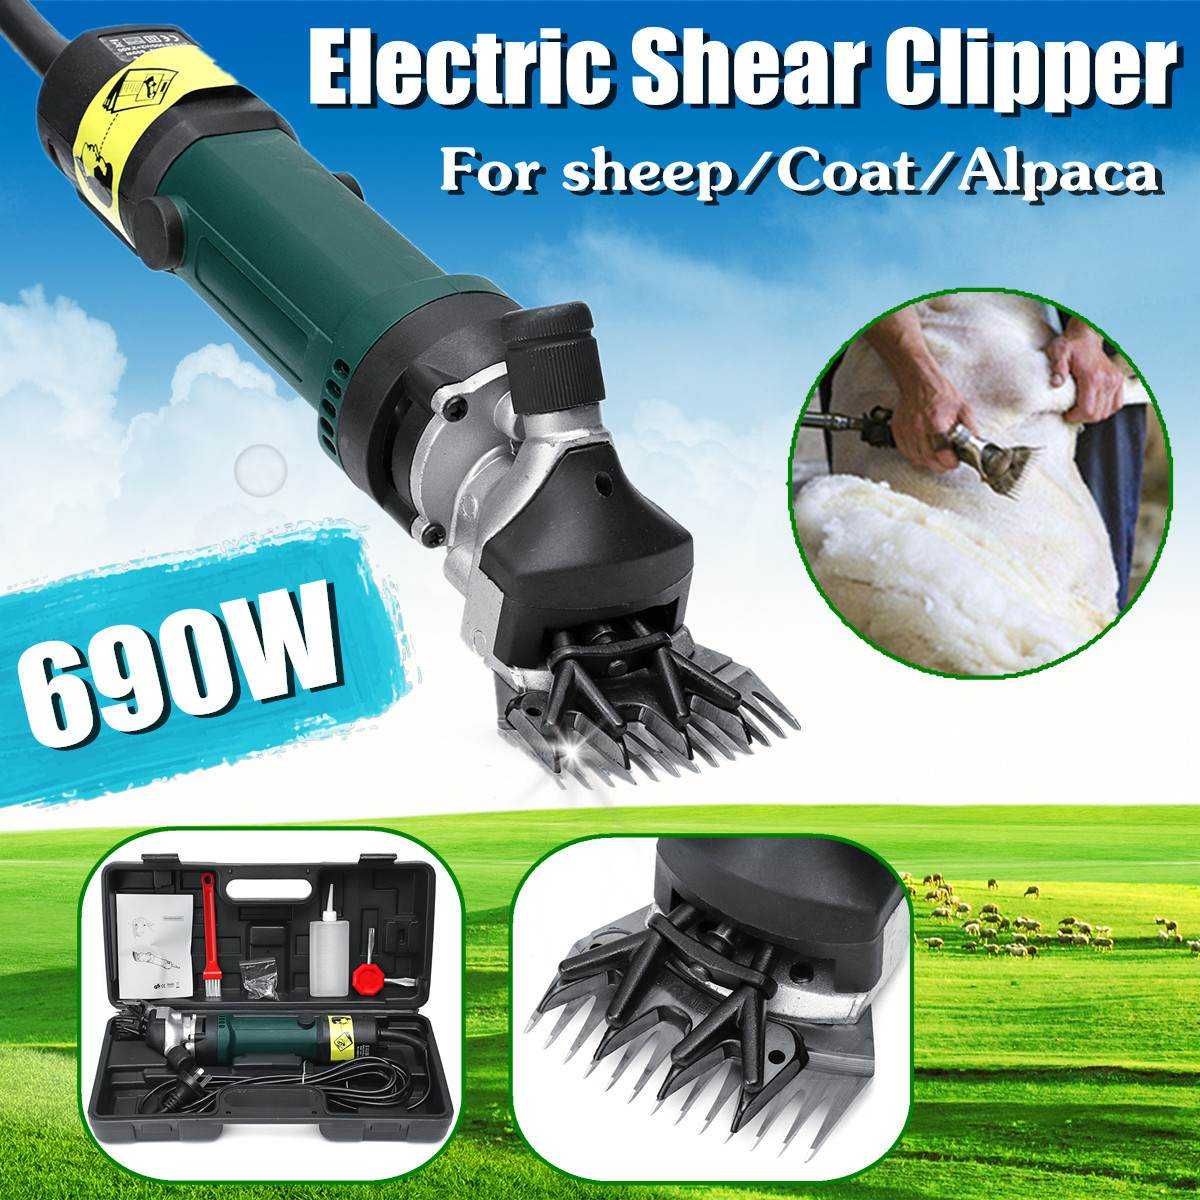 Hair Removal Trimmer 690W 6 Speed Adjustable Electric Sheep Shearing Clipper Shears Goat Light Weight Durable Solid High Speed